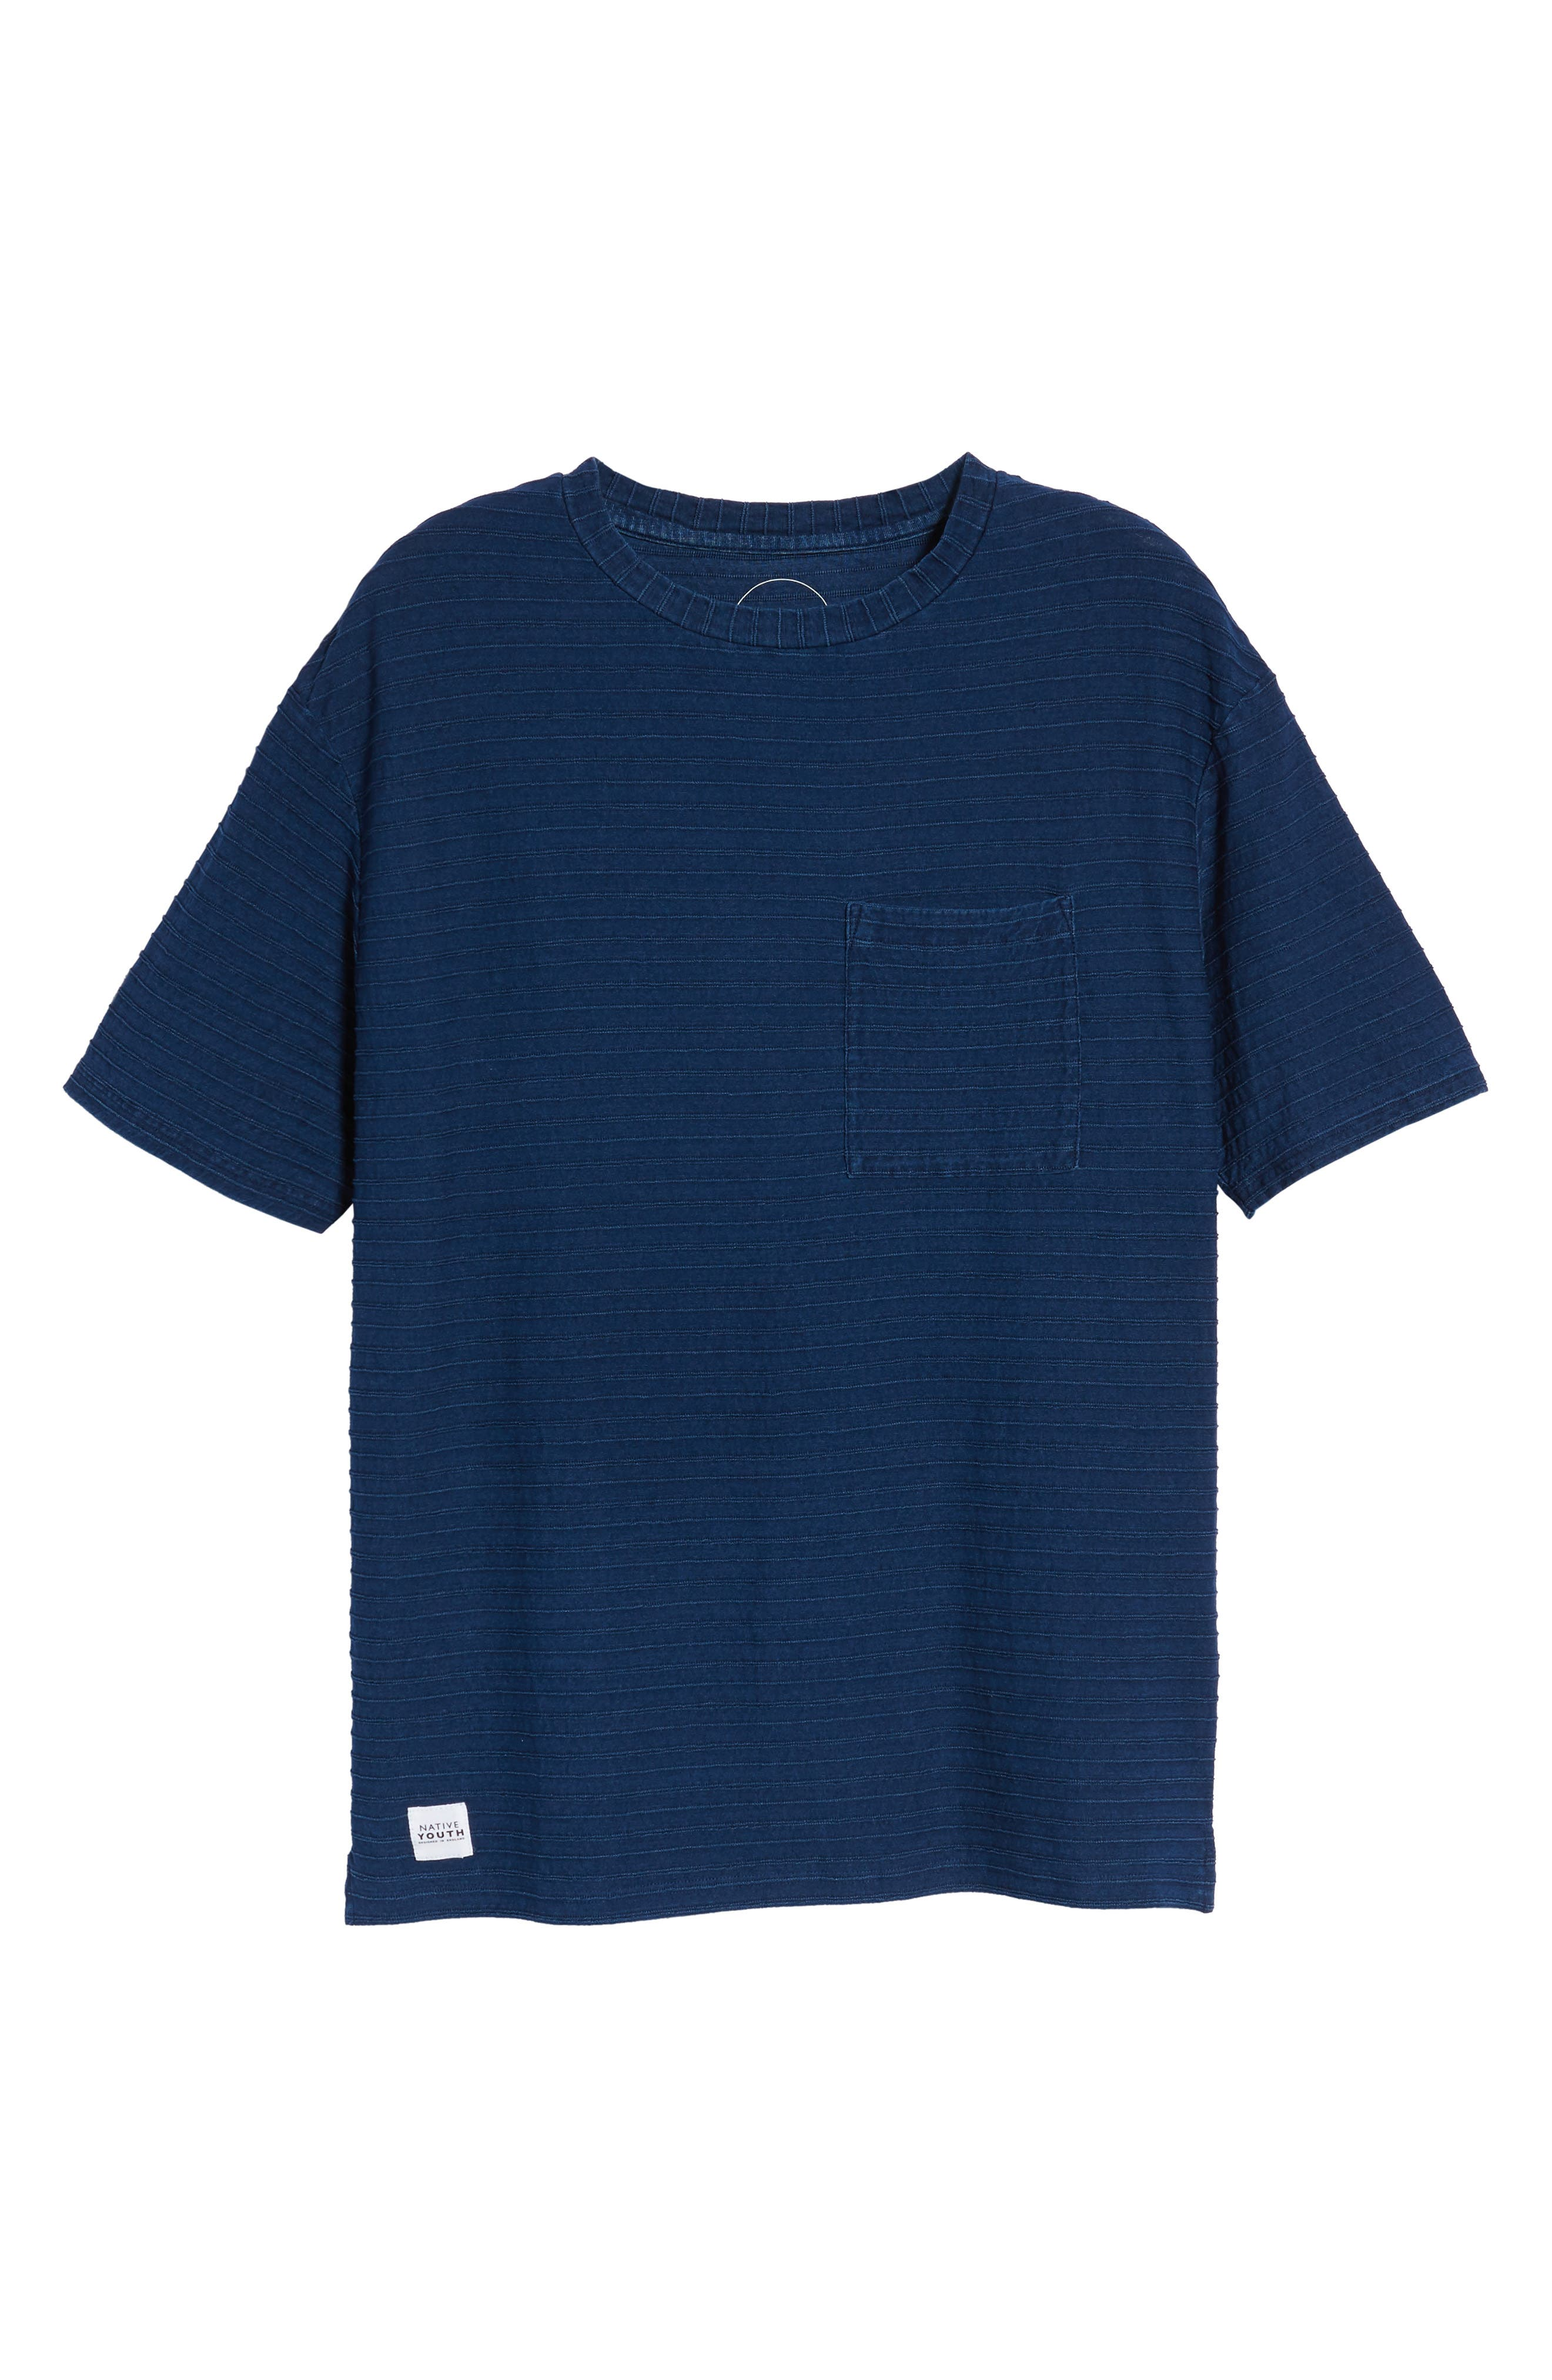 Tidal T-Shirt,                             Alternate thumbnail 6, color,                             Indigo